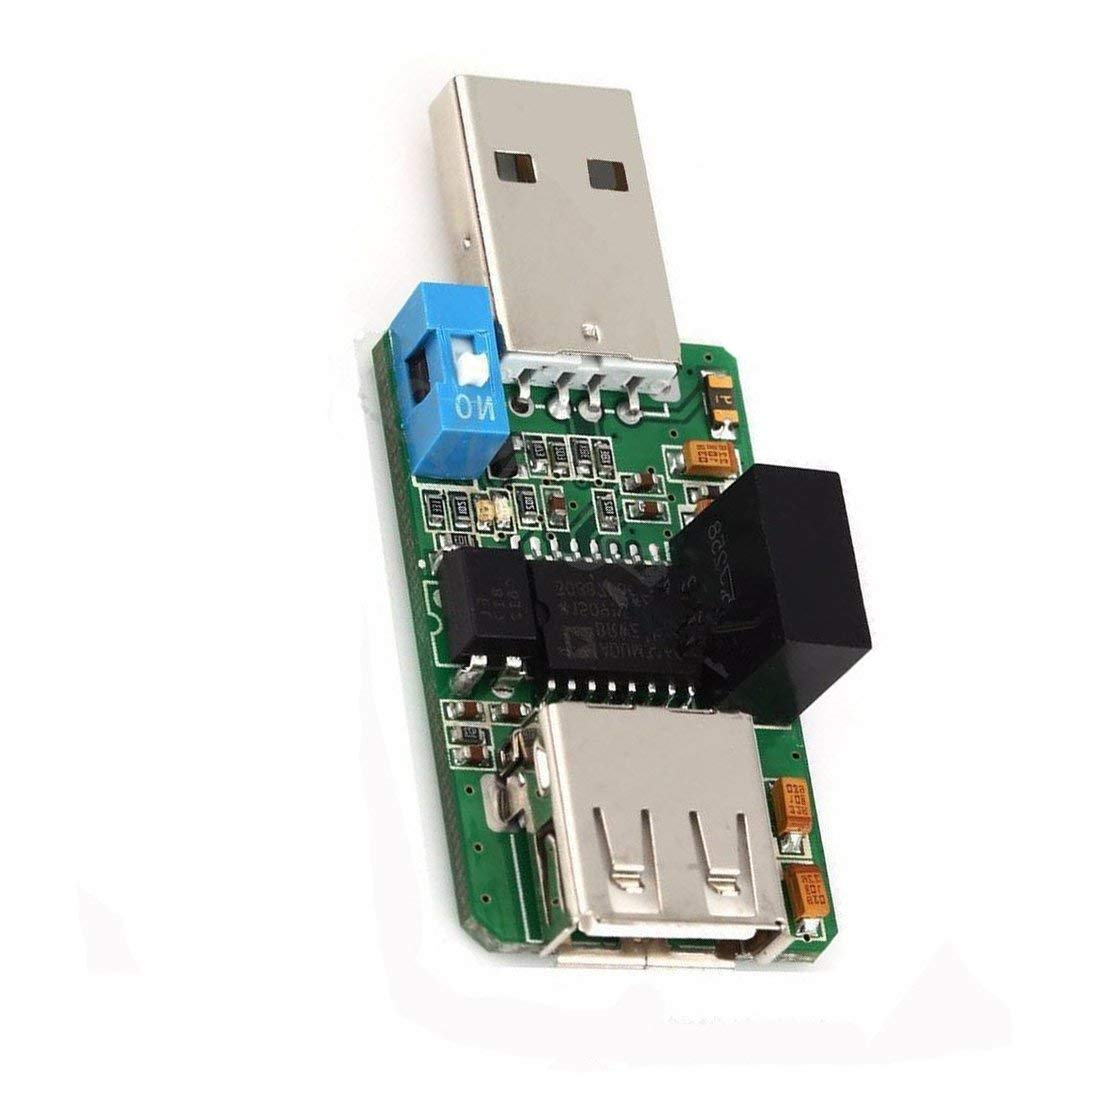 ADUM3160 B0505S 1500V USB to USB Voltage Isolator Module Support 12Mbps 1.5Mbps